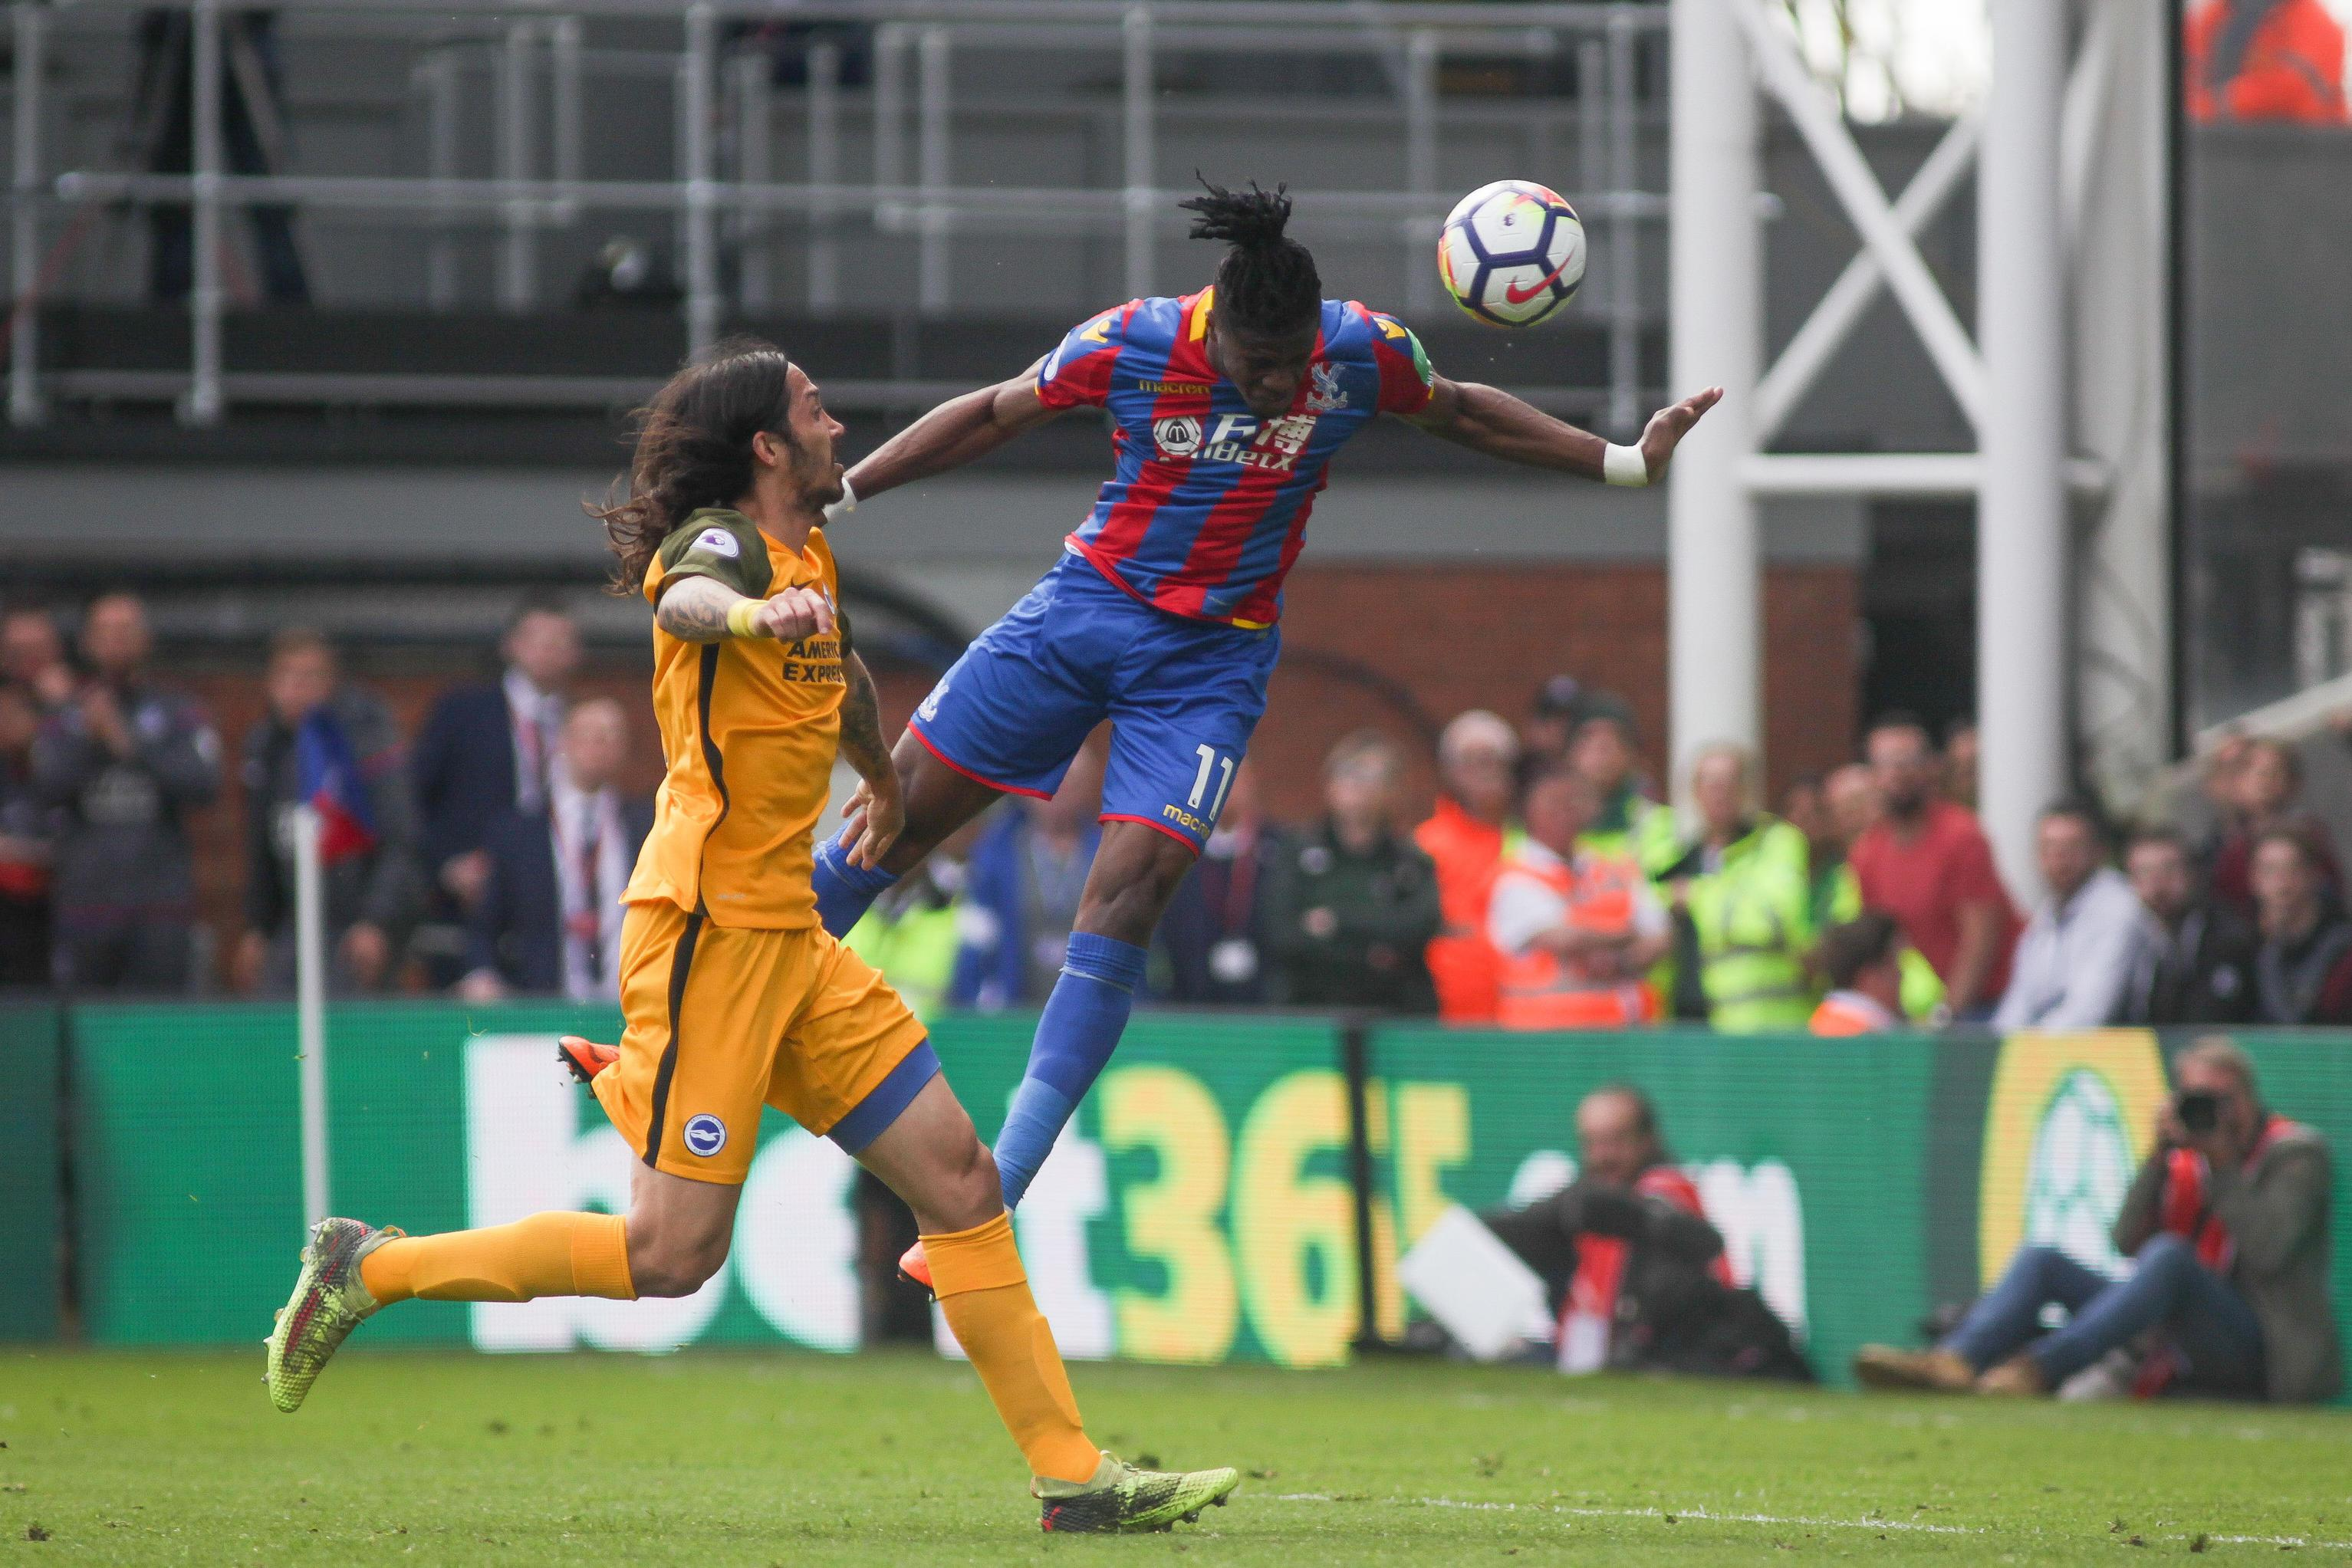 Zaha rose brilliantly to head home and make it 3-1